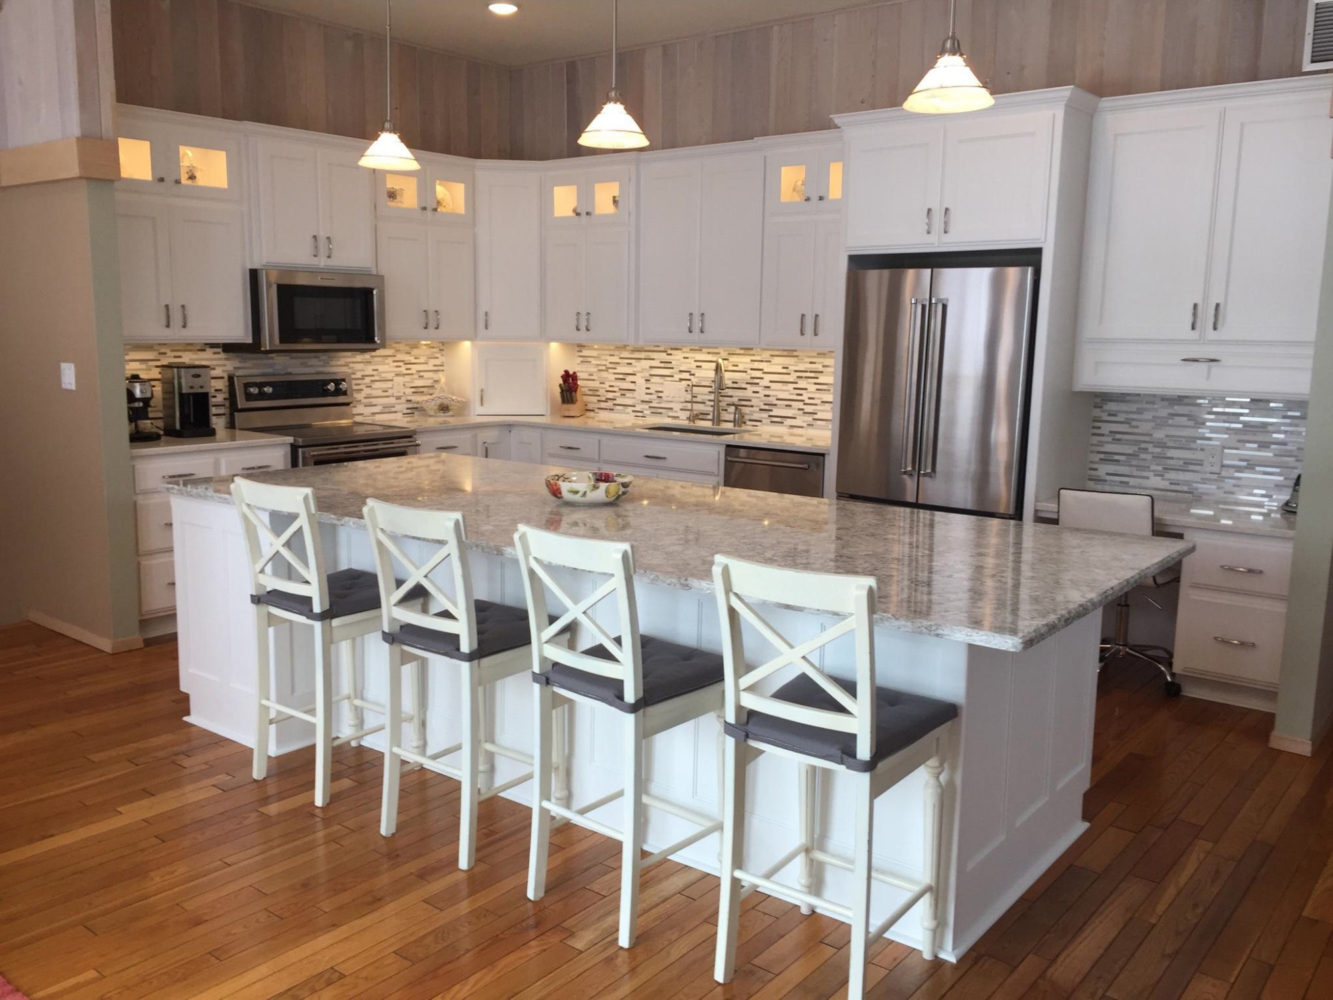 bright white kitchen cabinets cabinets in bright white galleries amp projects the 12536